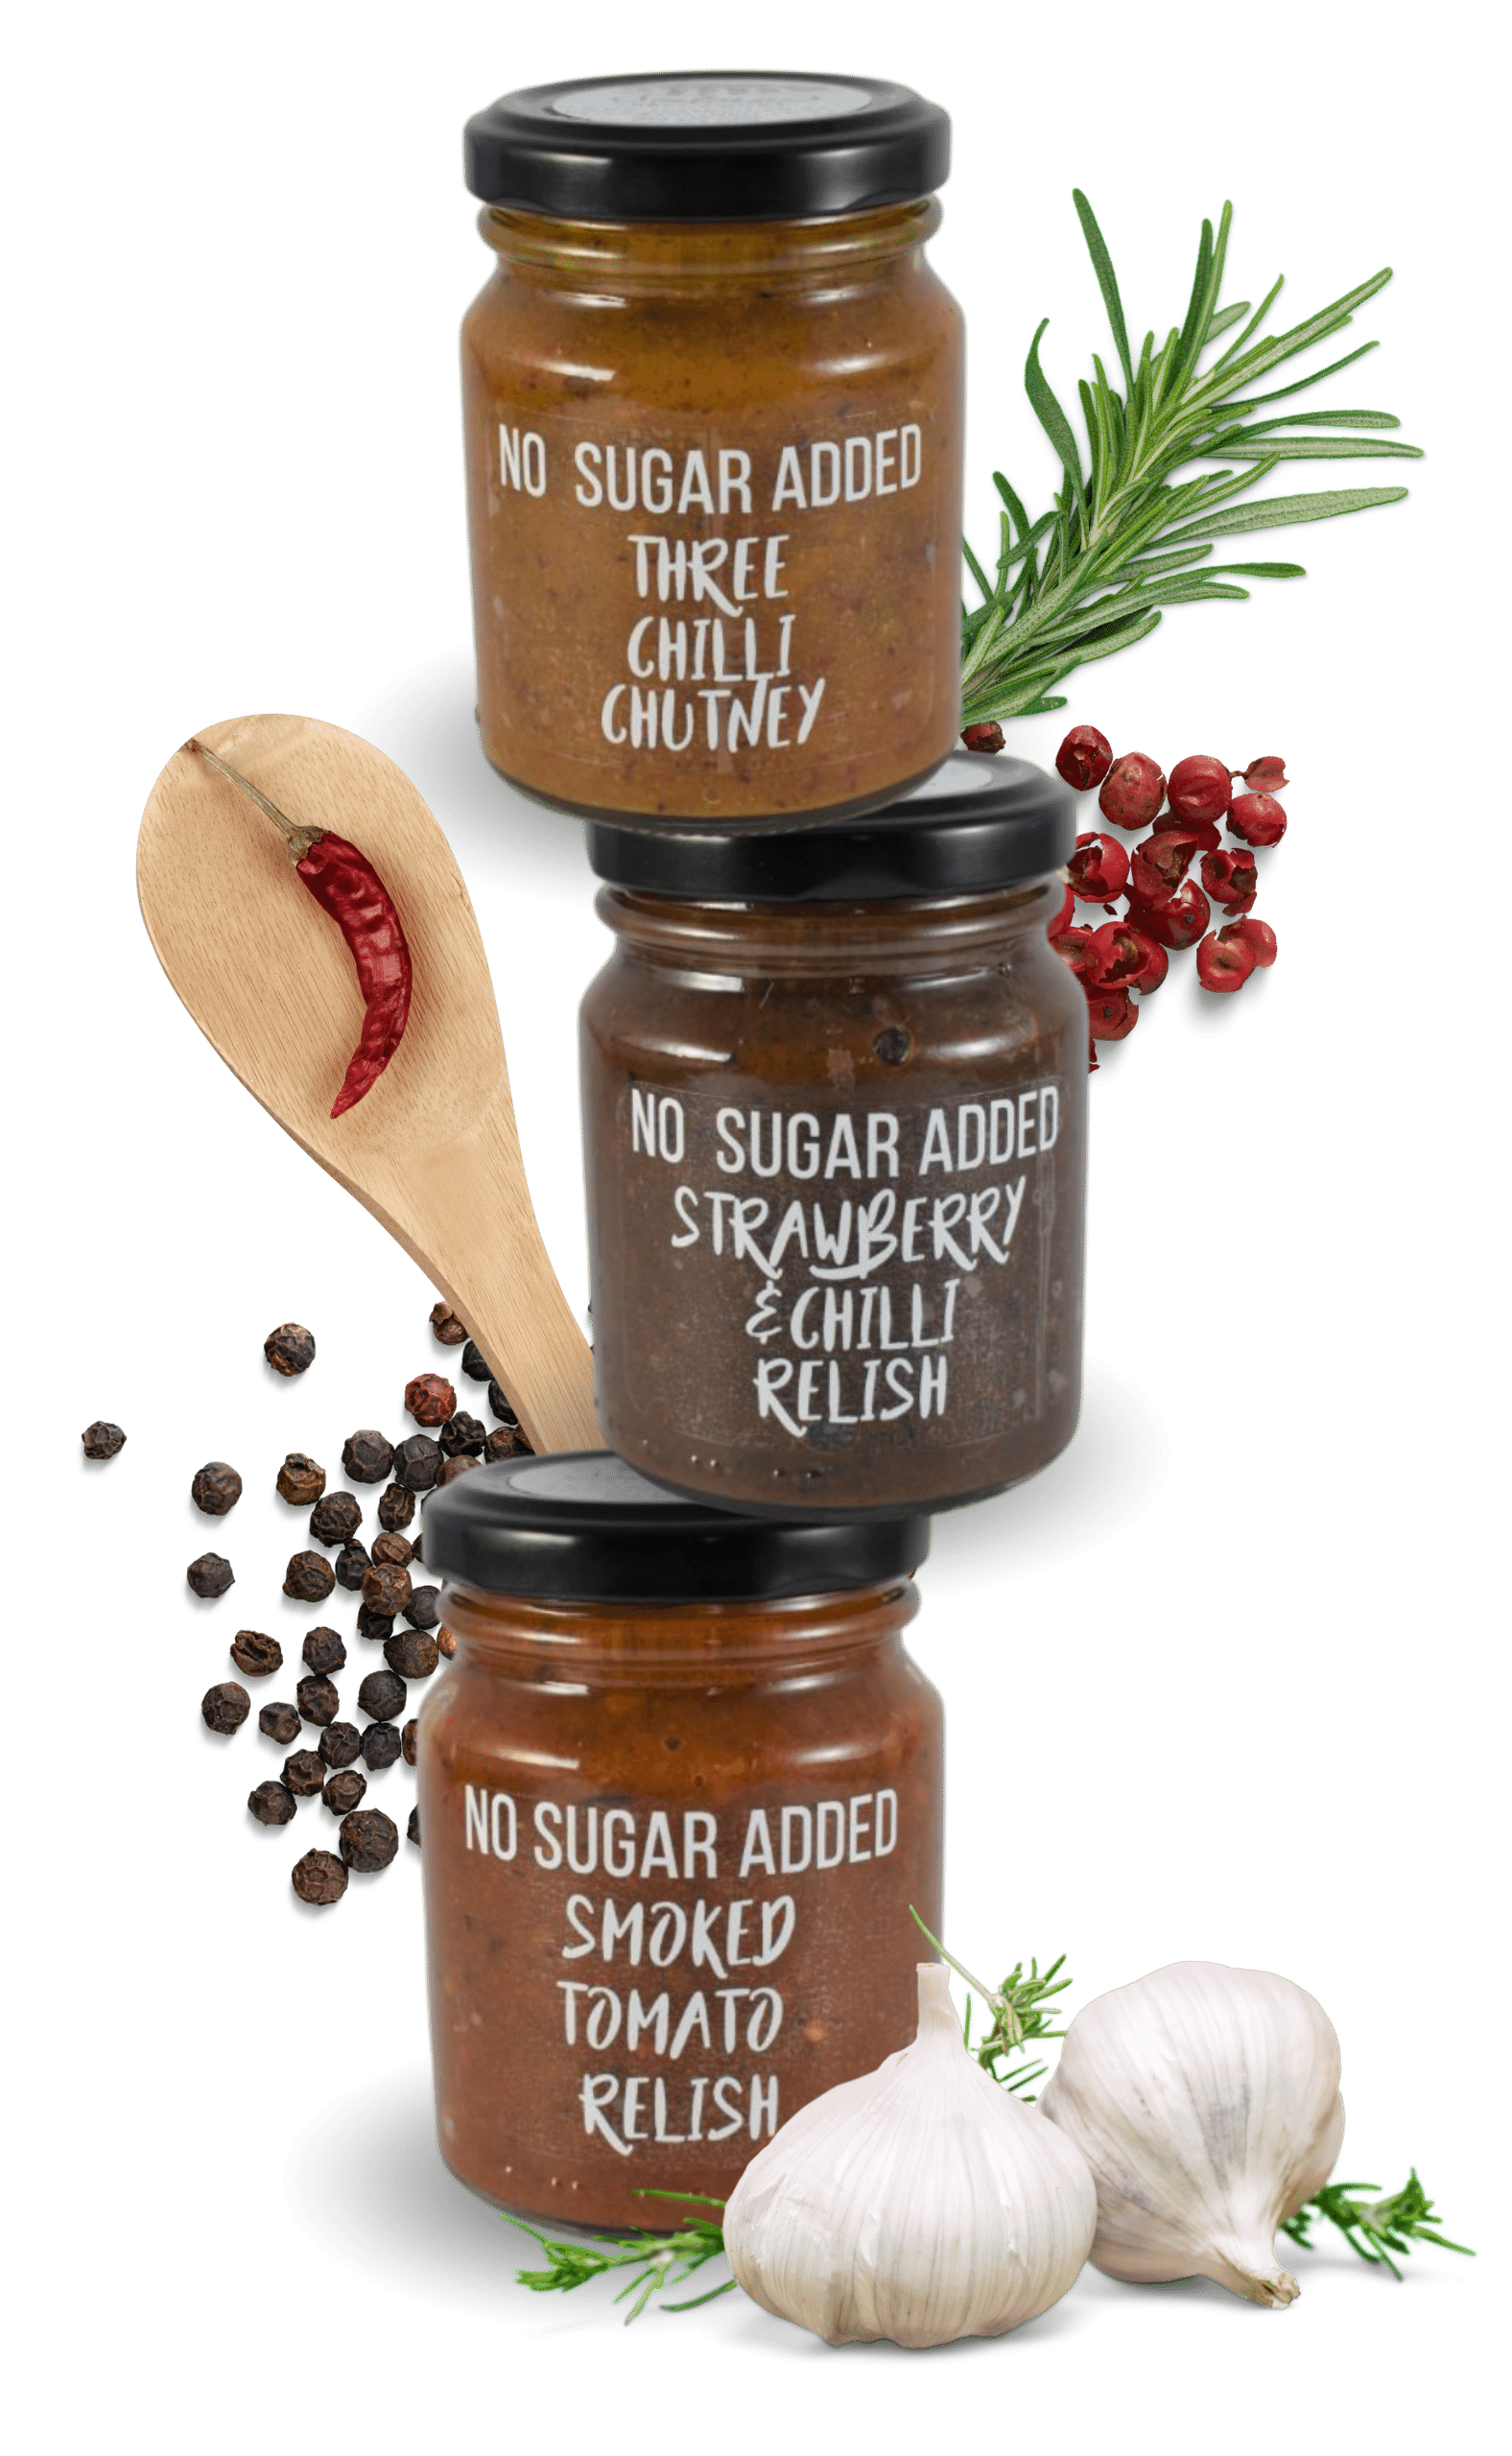 No Sugar added preserves and Jam, gluten free, preservative free, vegan friendly snack